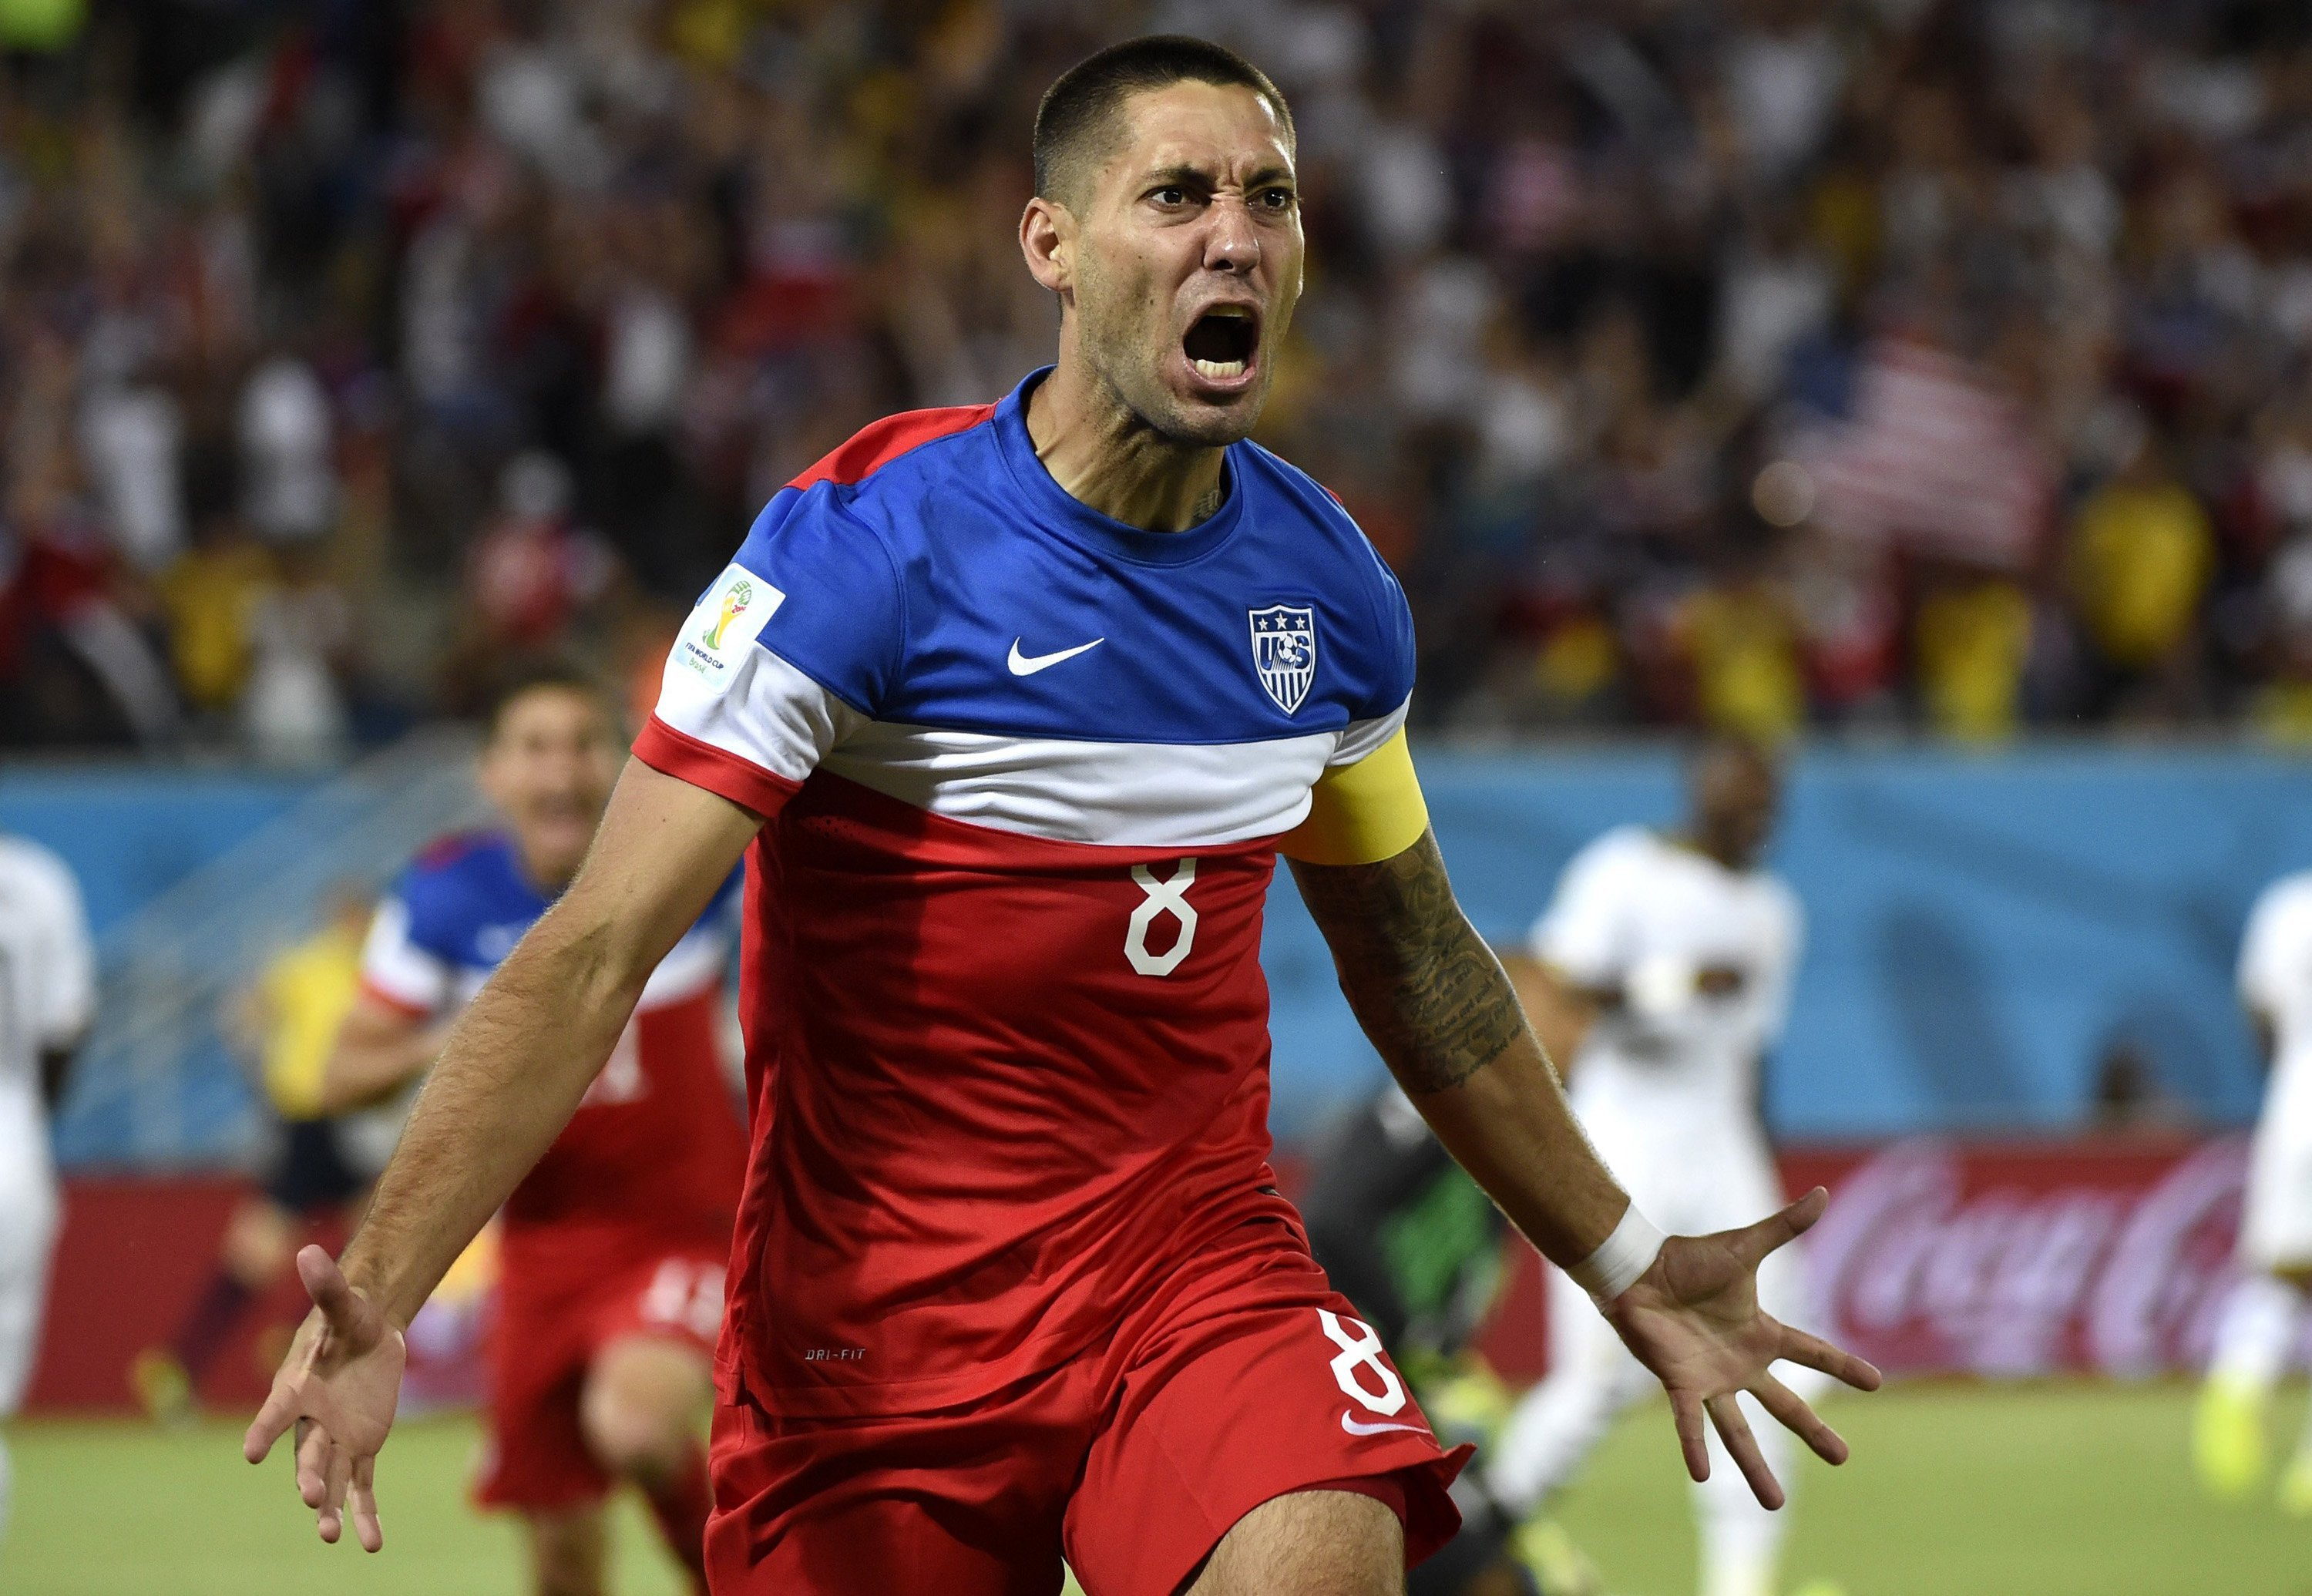 Clint Dempsey of Team USA celebrates his goal against Ghana during the World Cup in Natal, Brazil, on June 16. Credit: Courtesy of MCT